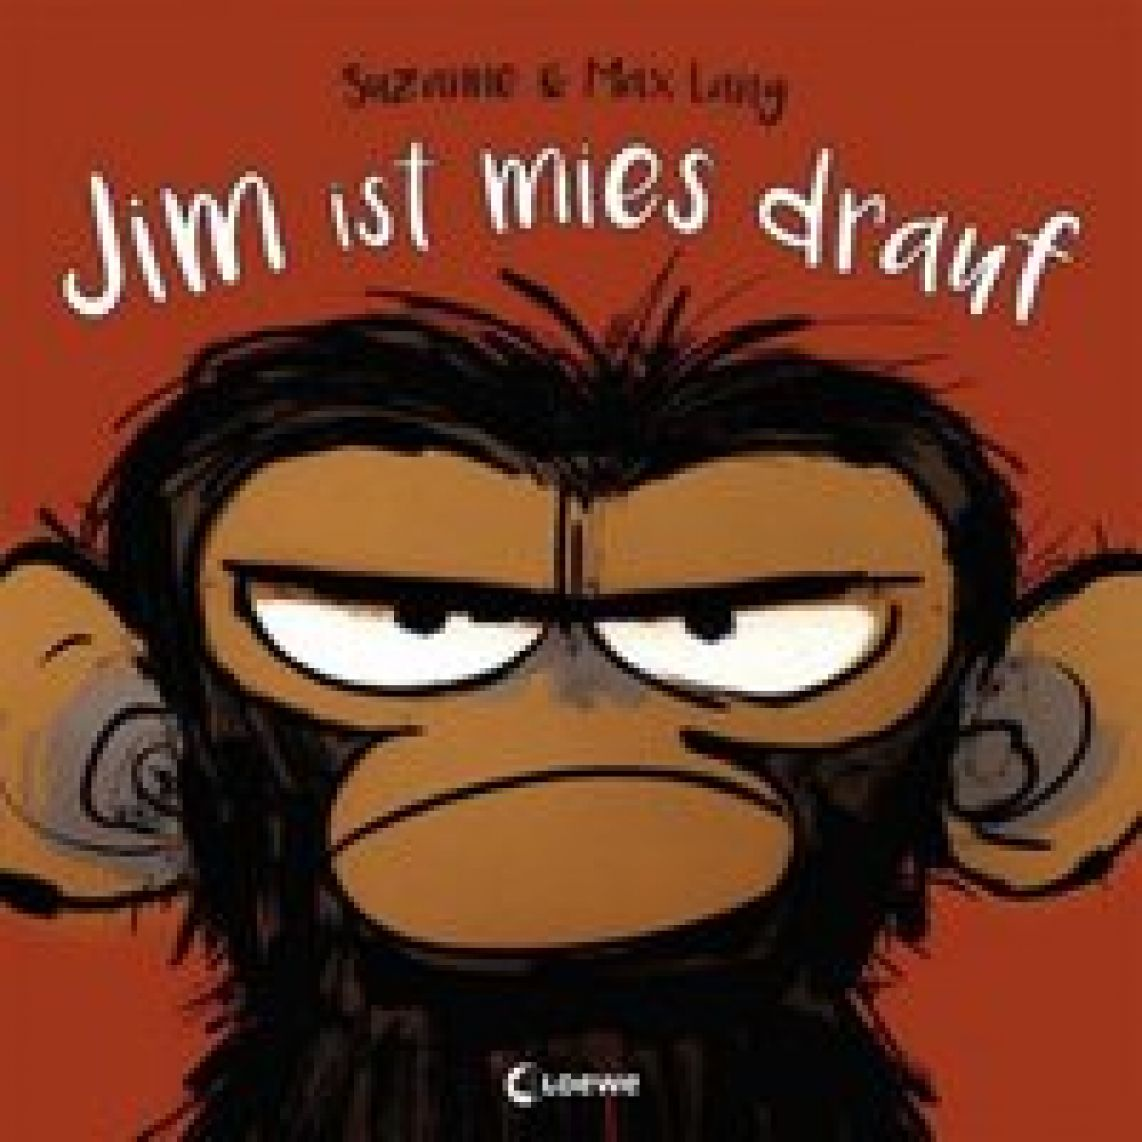 "Lang, Suzanne  ""Jim ist mies drauf"""